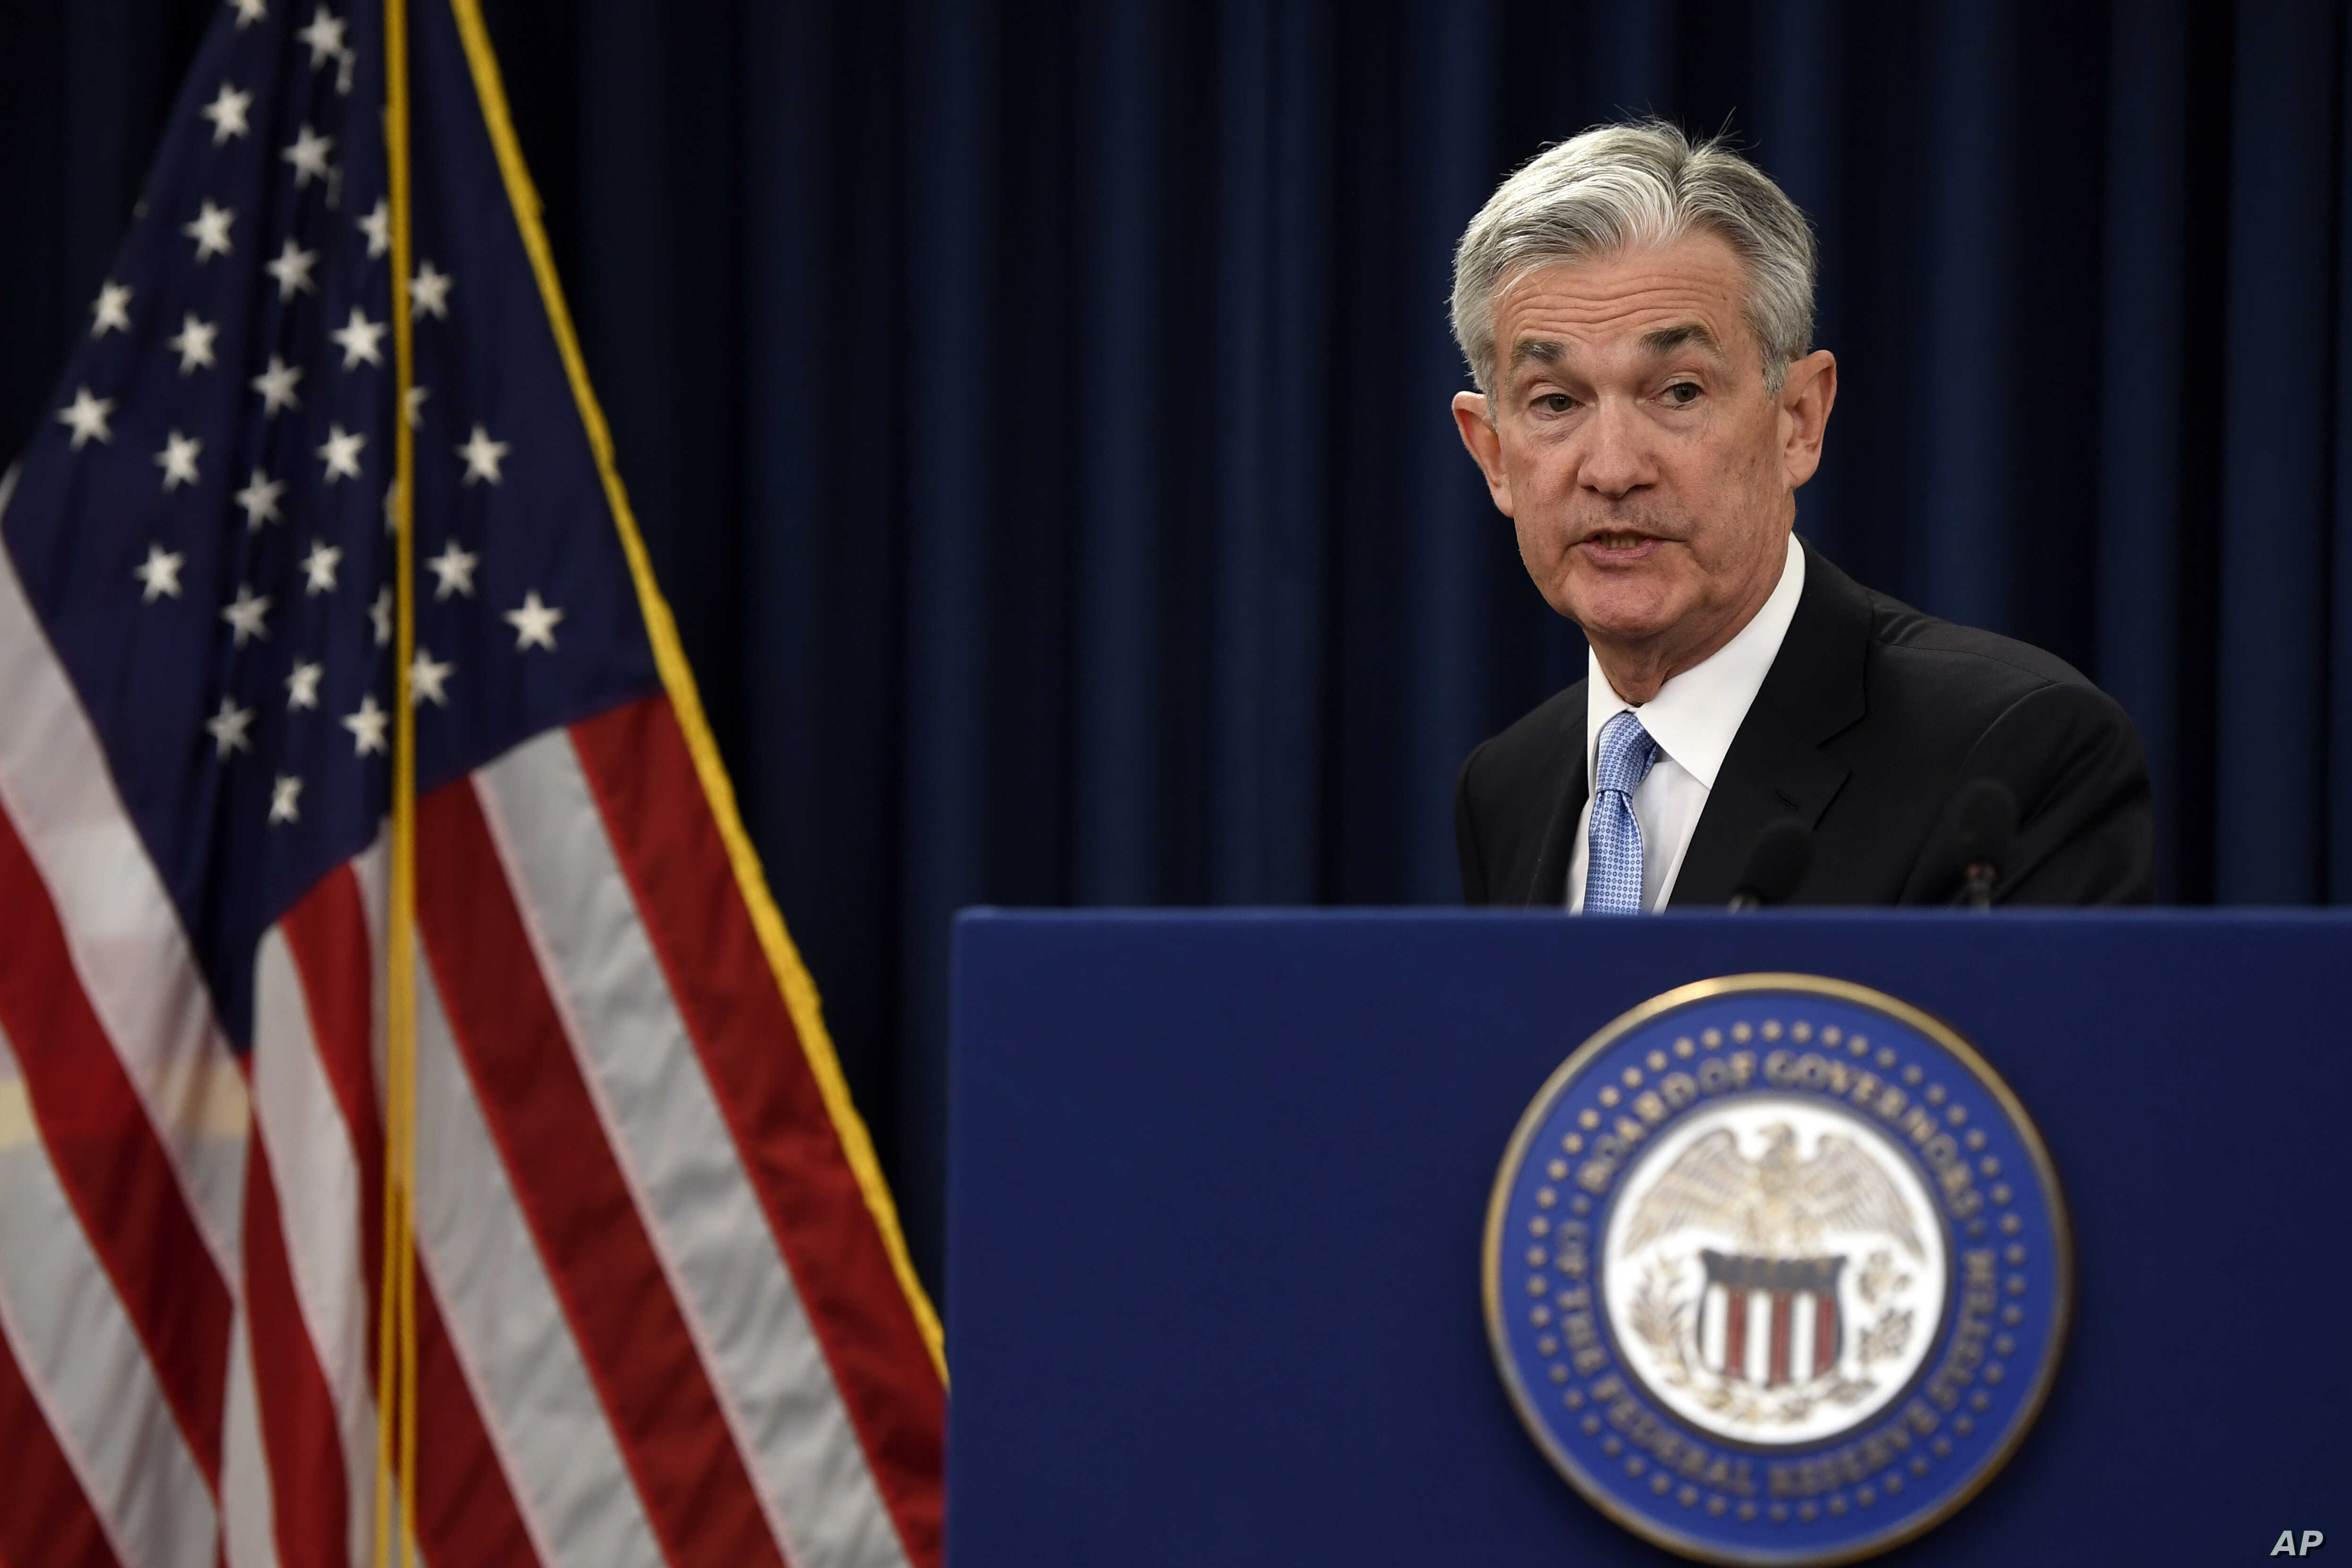 Federal Reserve Chair Jerome Powell gathers his notes as he concludes his news conference in Washington, March 20, 2019.